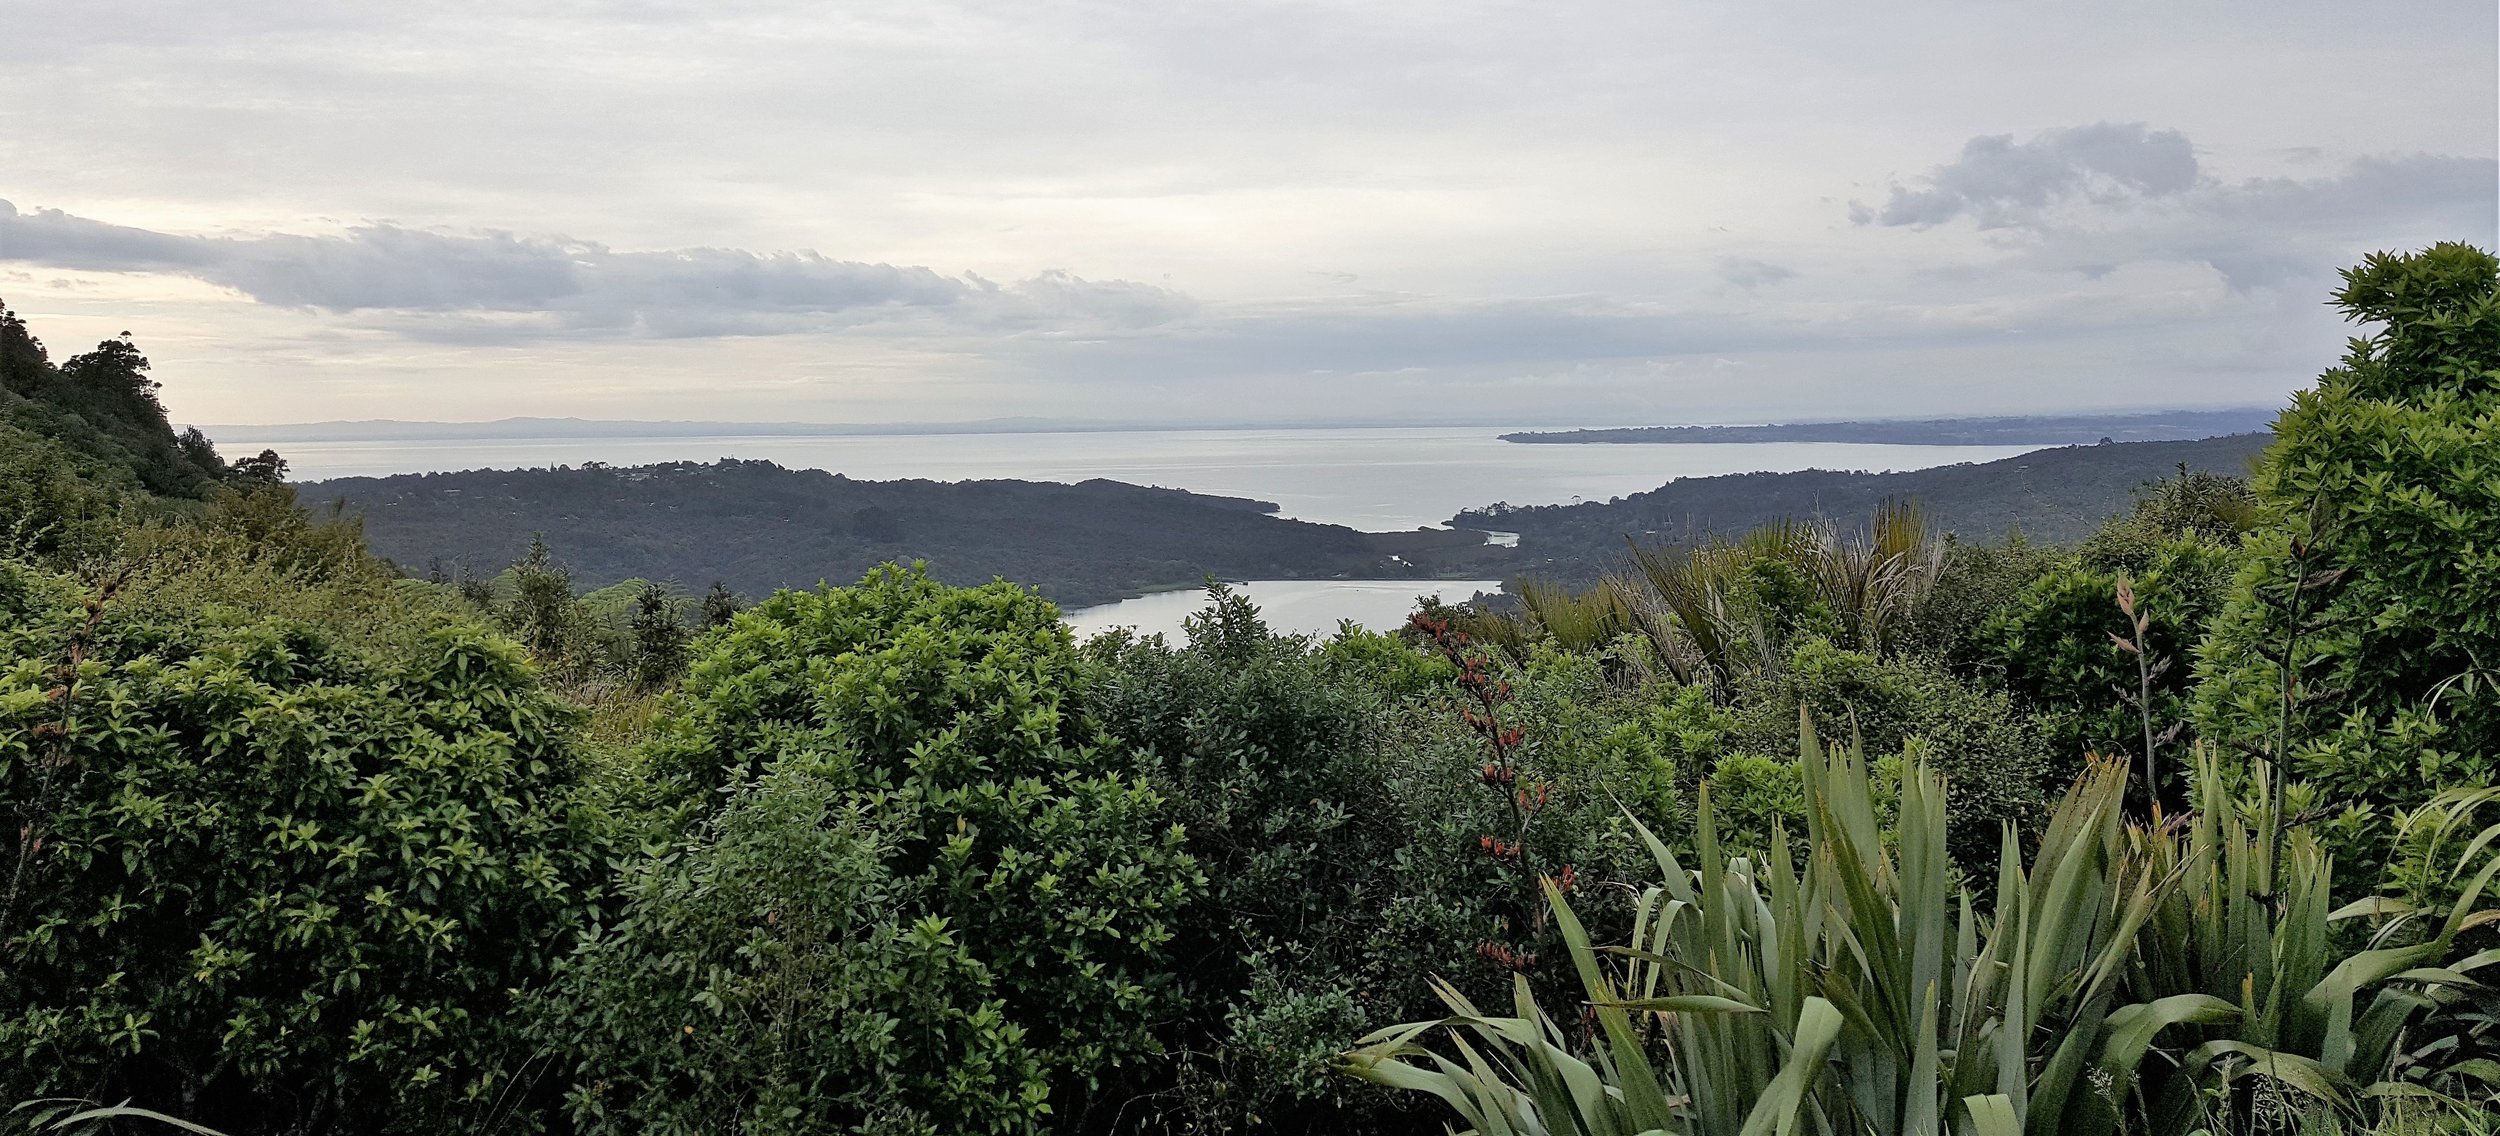 Looking out towards Huia from Scenic Drive in Titirangi